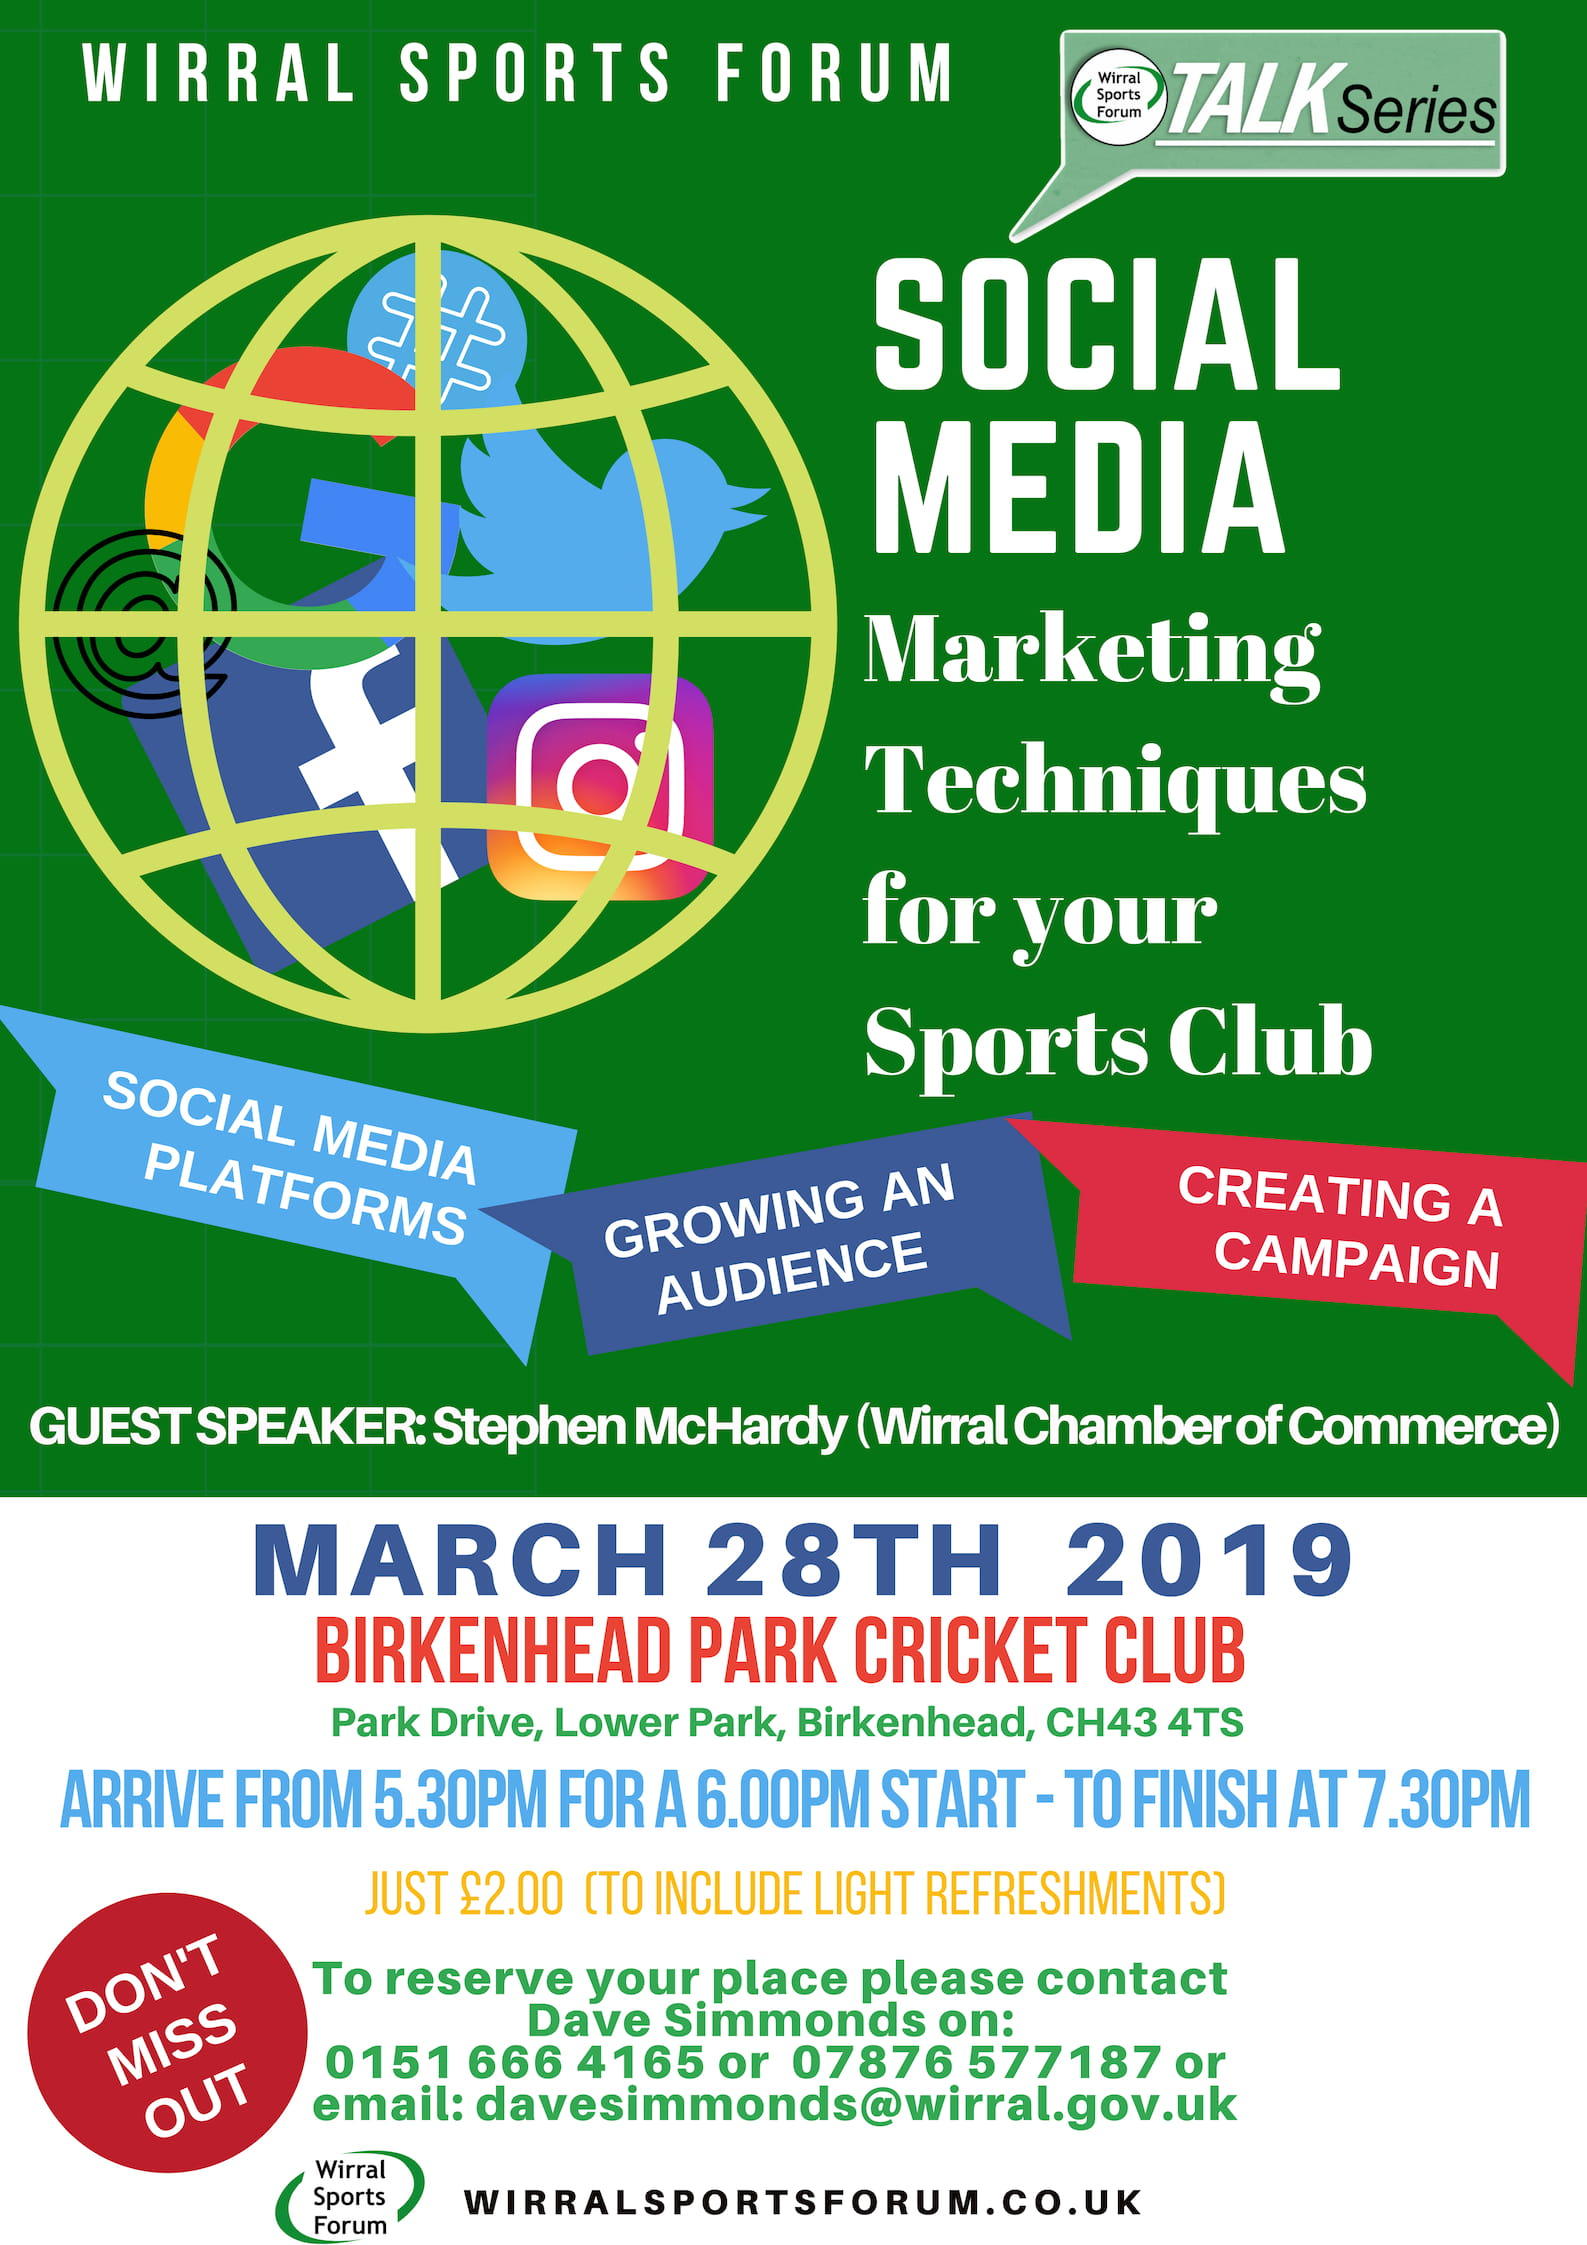 Talk Series – Social Media for Sports Clubs